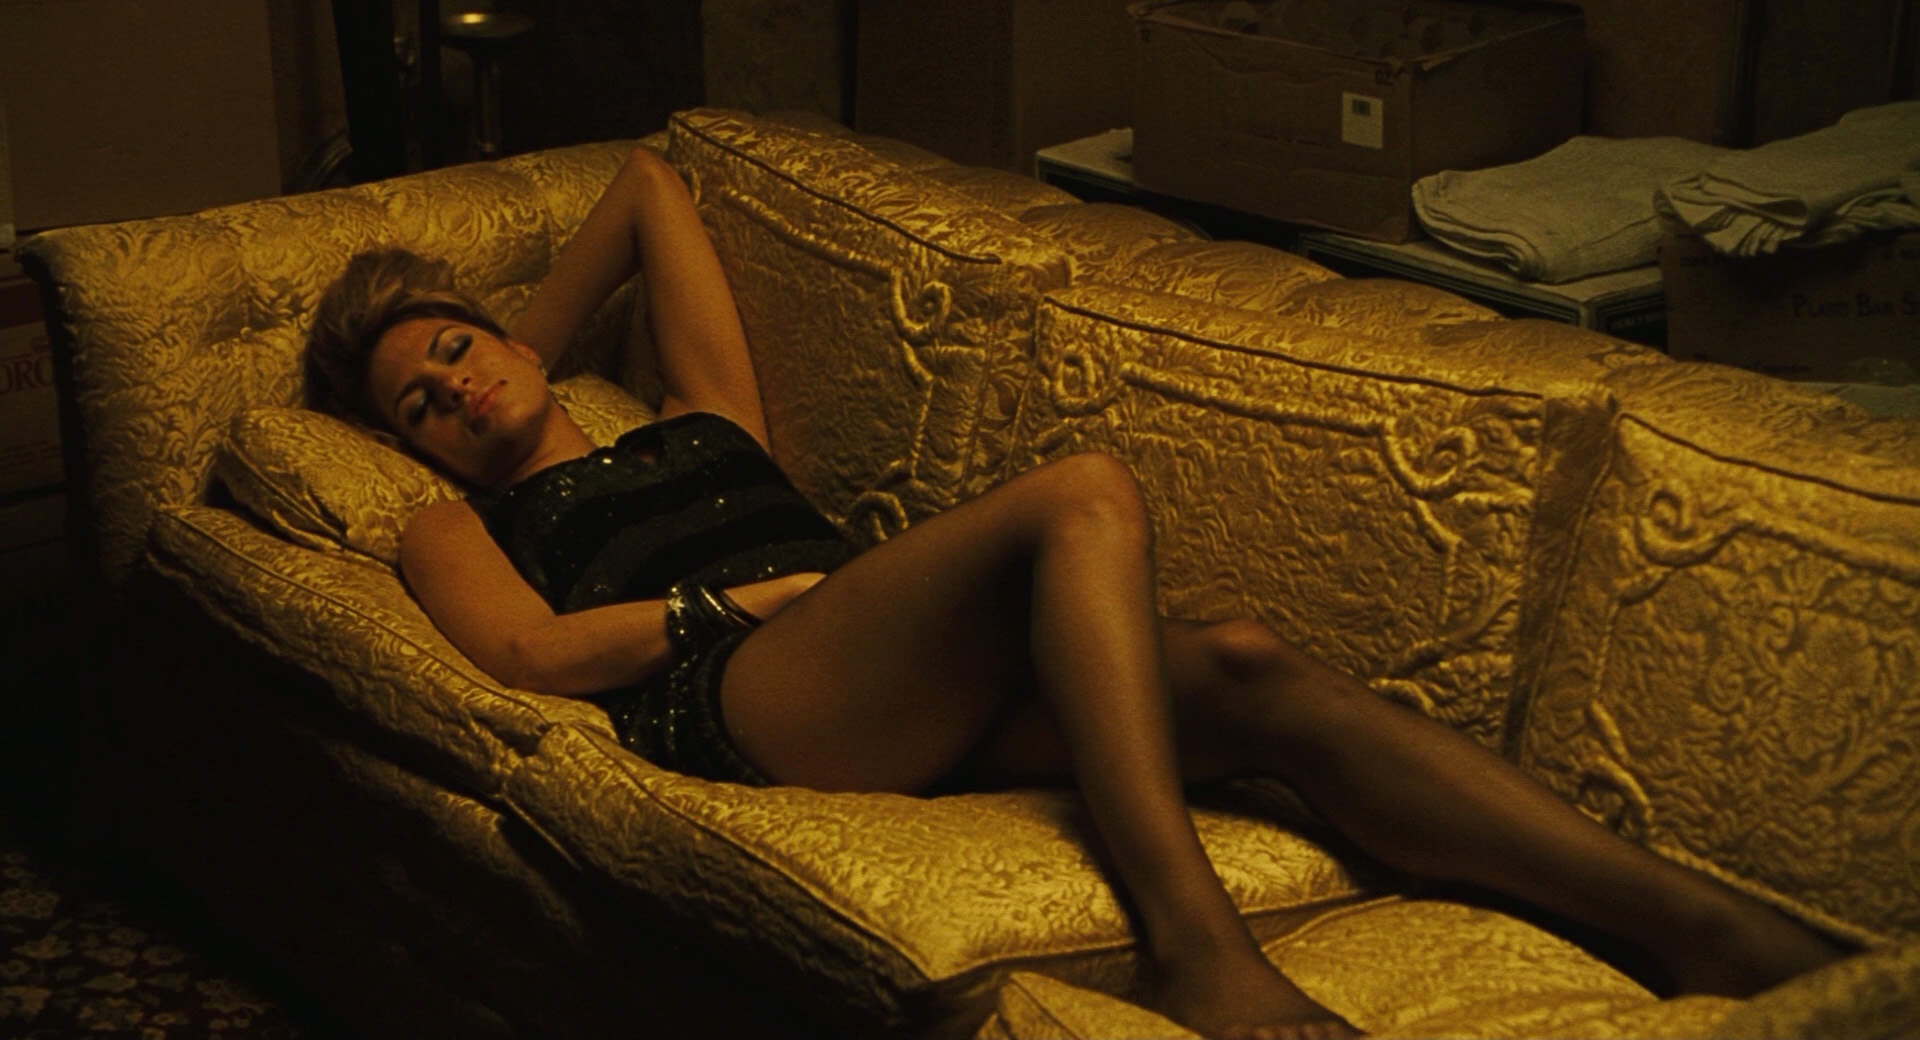 Eva mendes sex scene we own the night